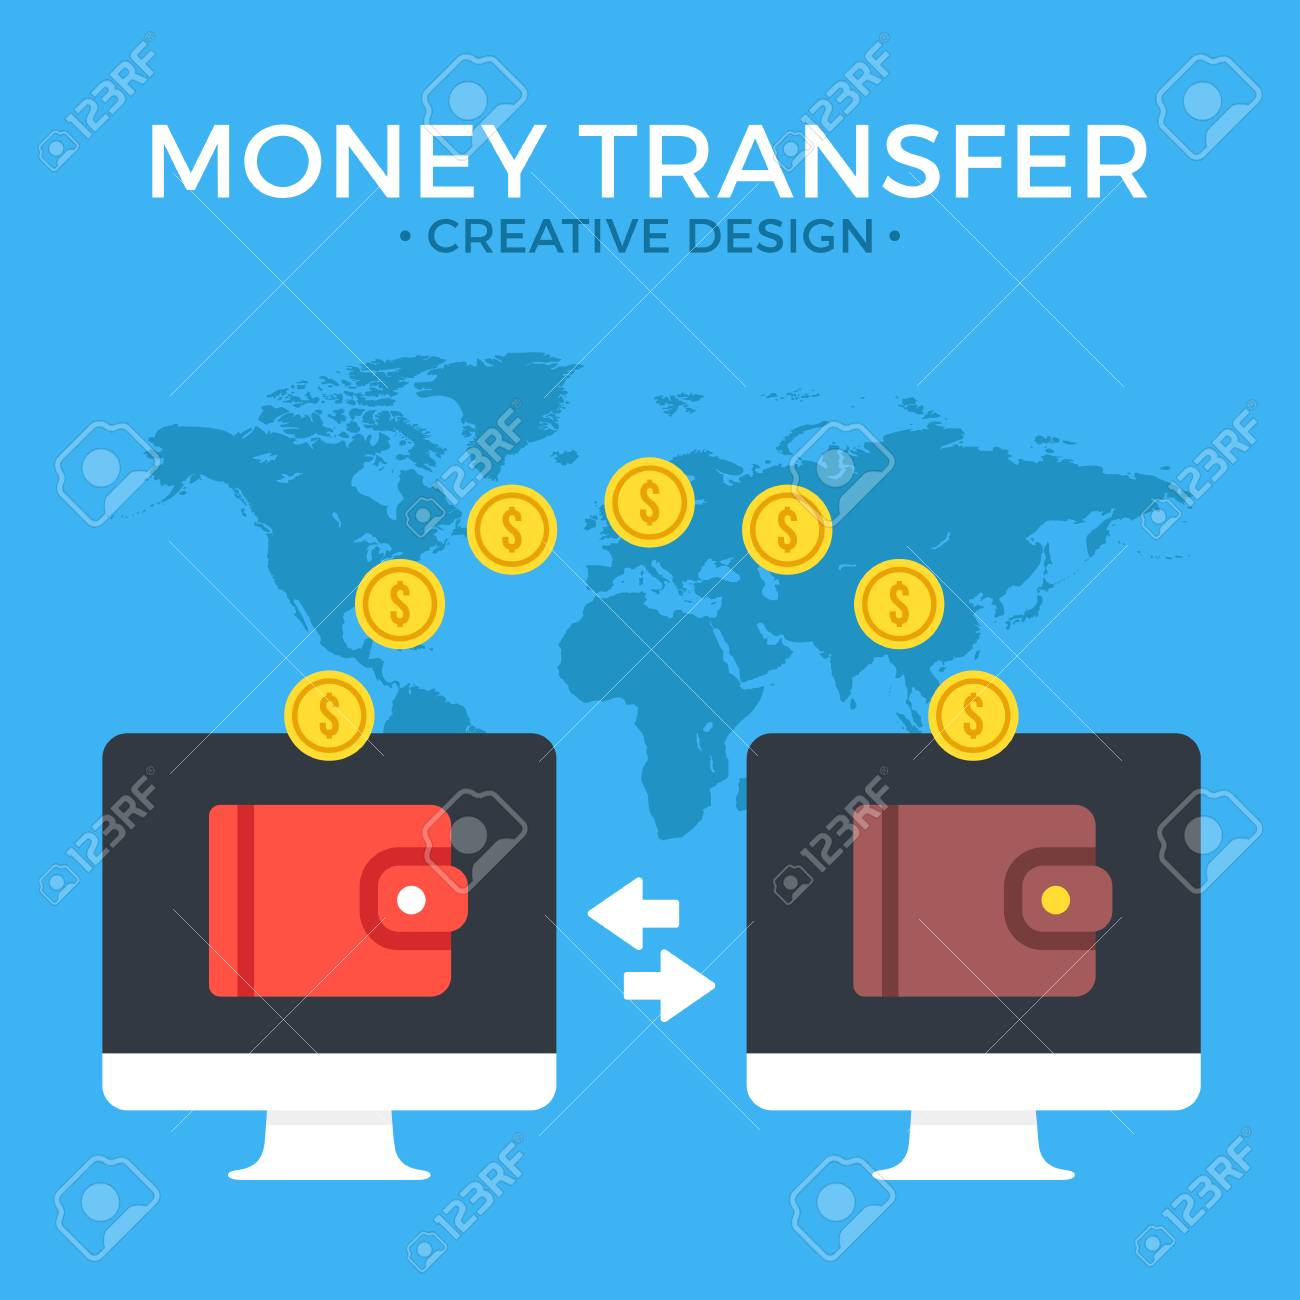 Money transfer  Two computers with wallets on screen and transferred